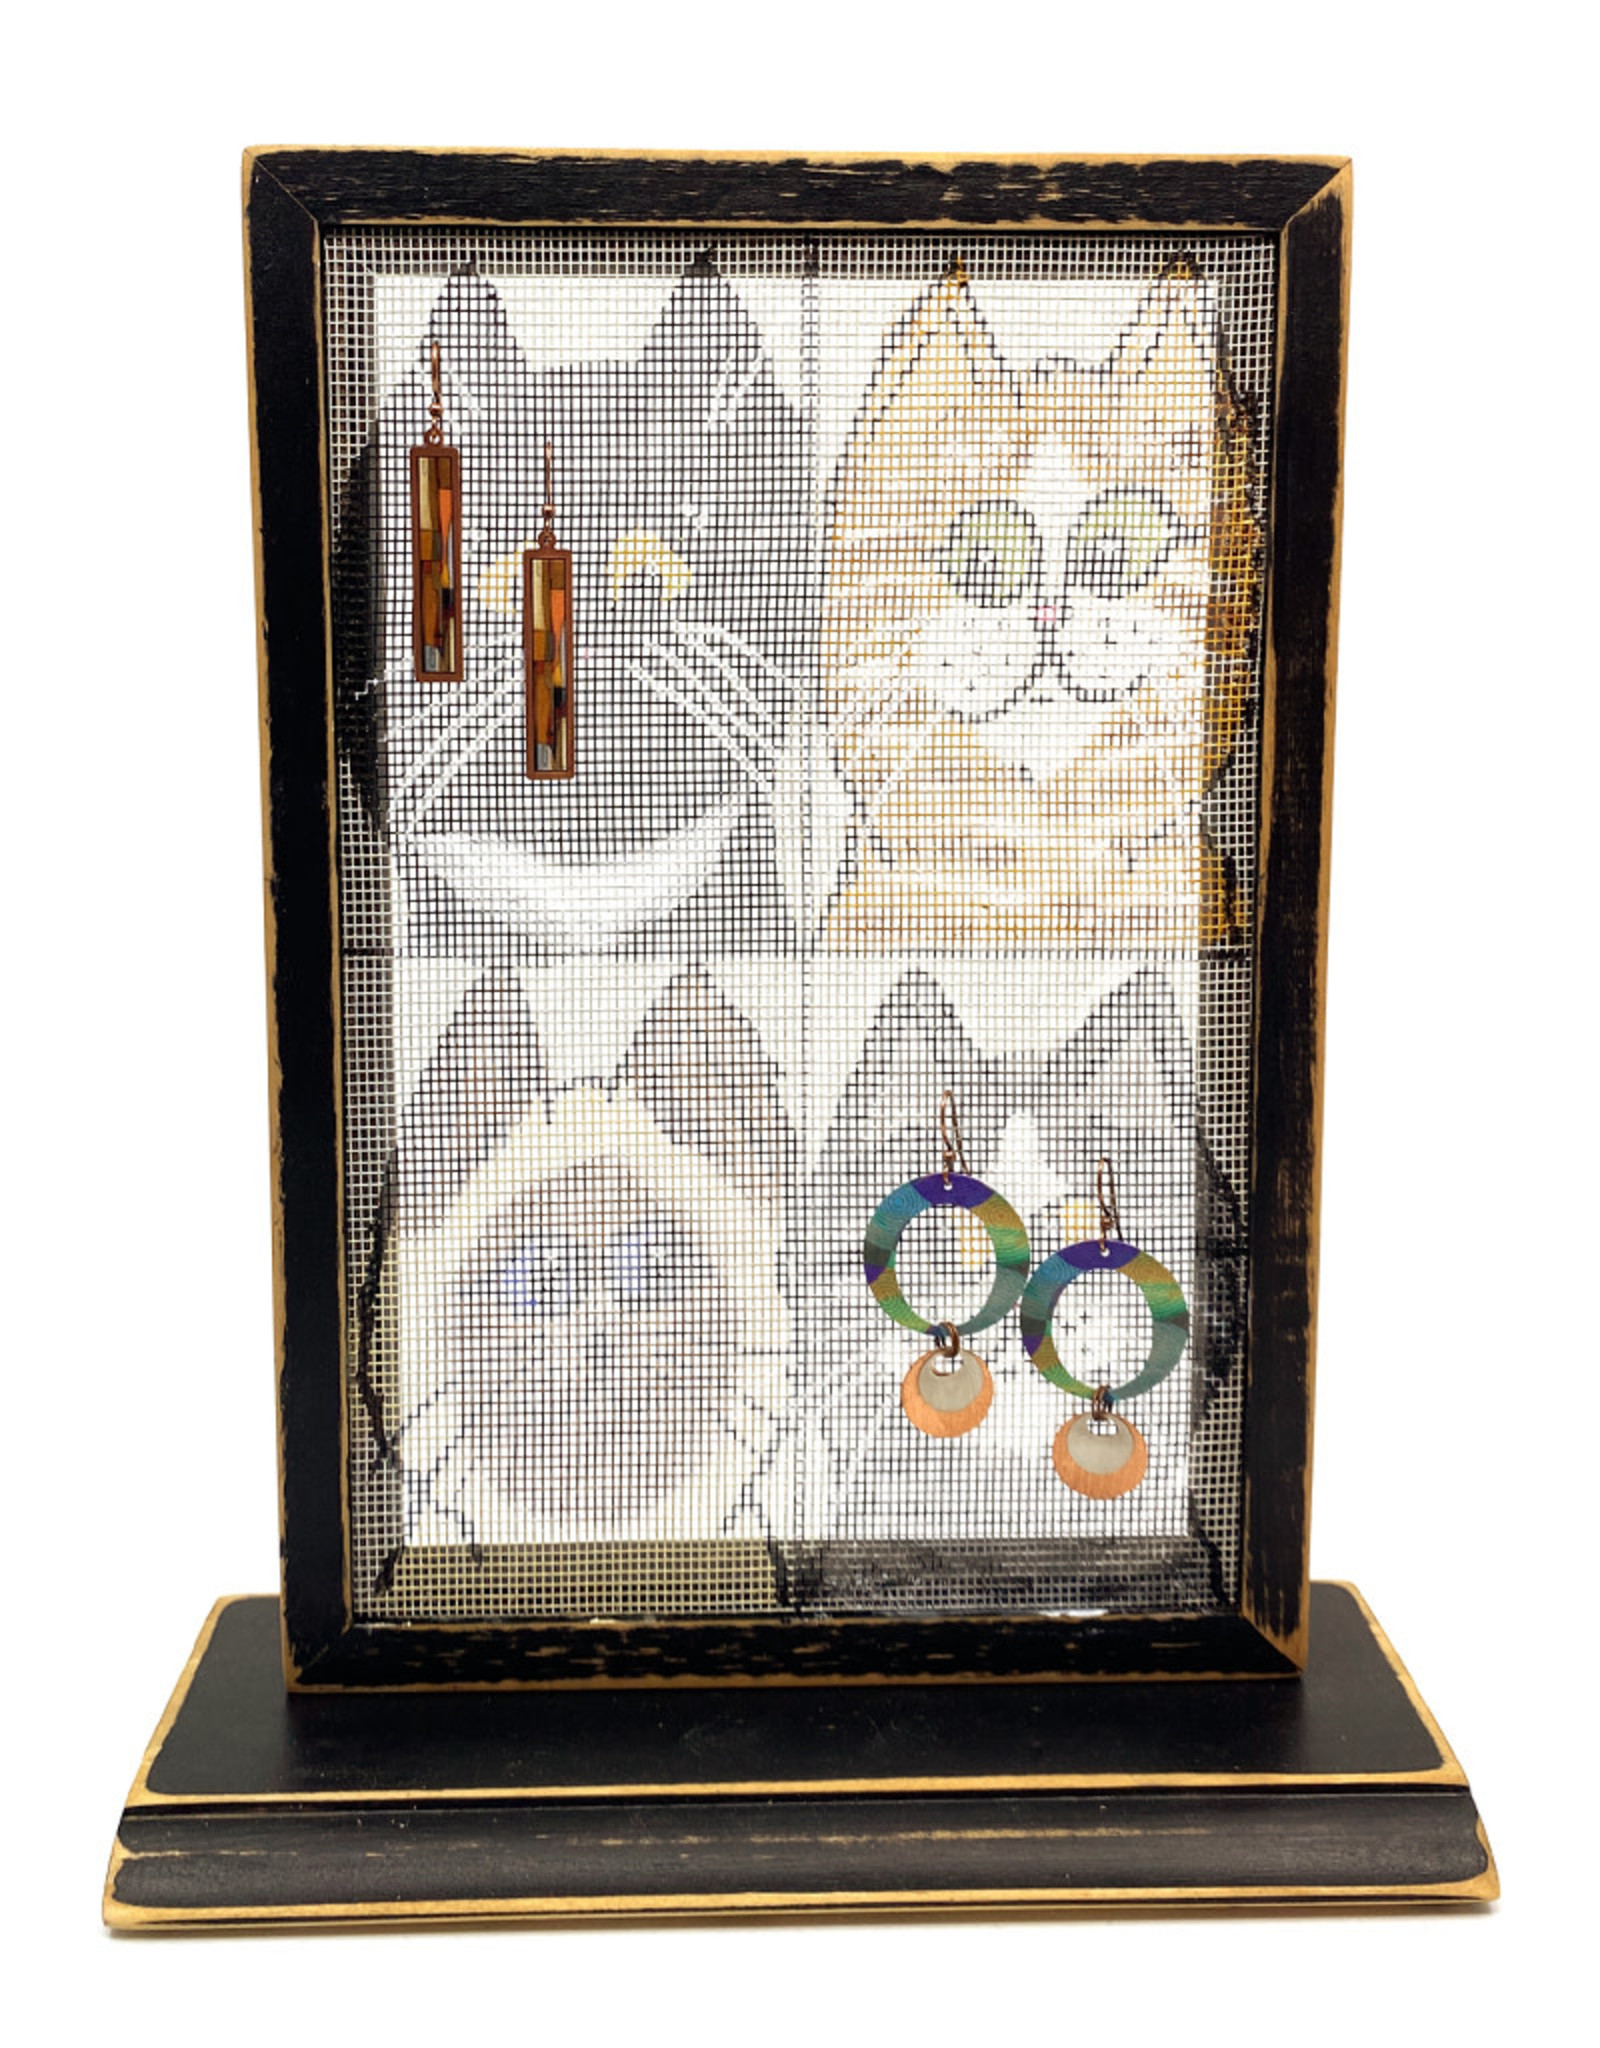 Mesh Earring Holder : earring, holder, EARRING, HOLDER, Pot-Pourri